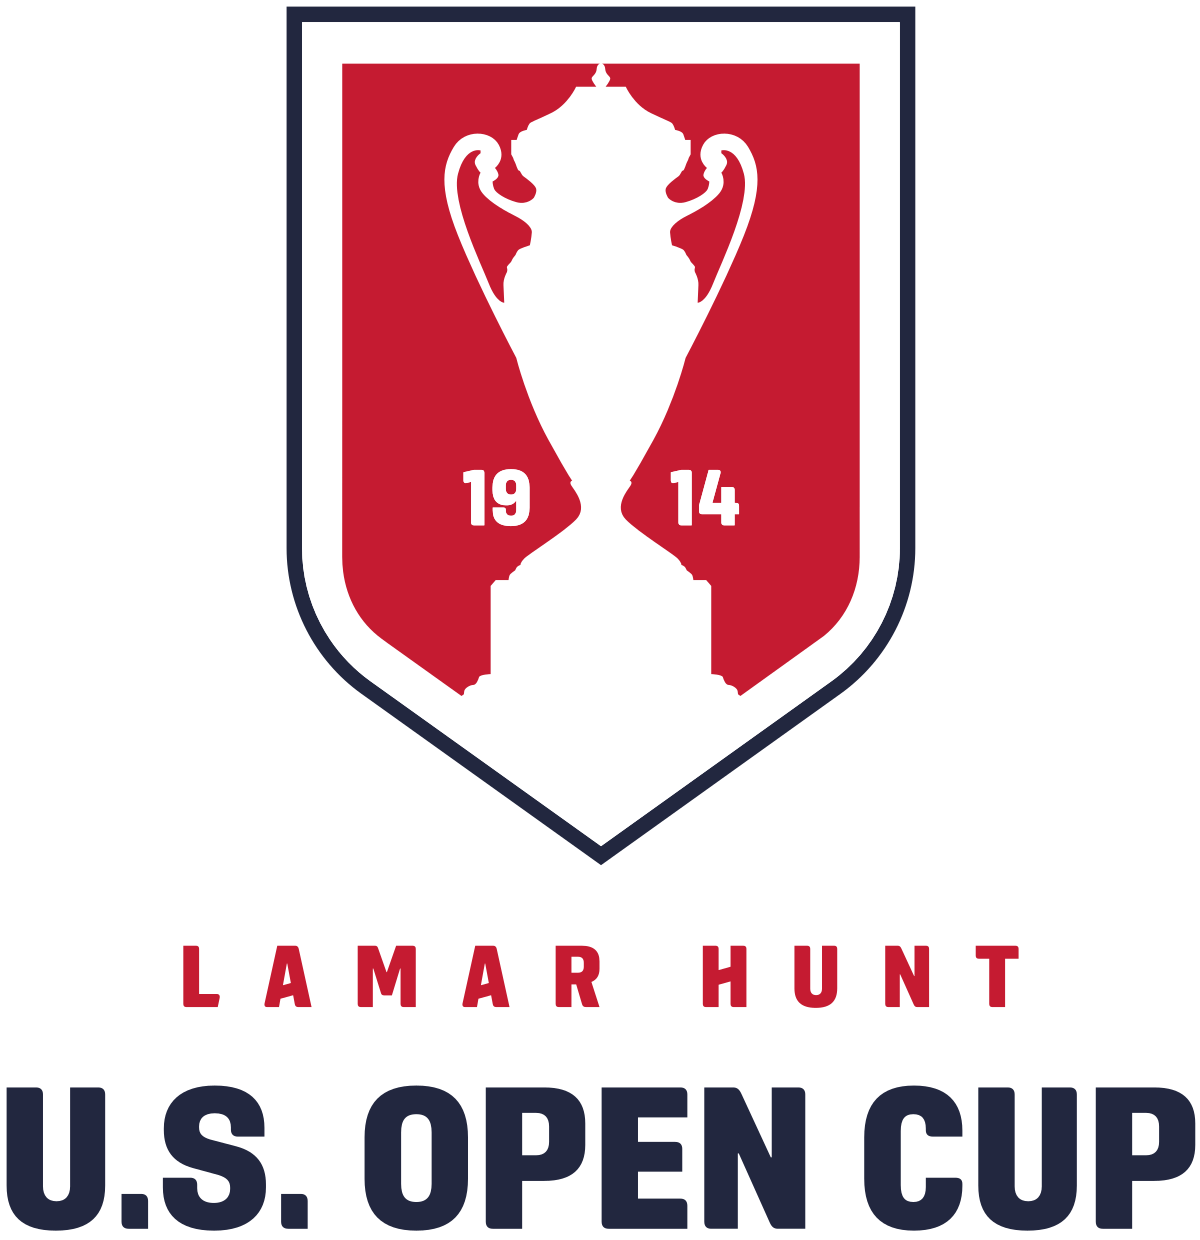 US Open Cup League Logo